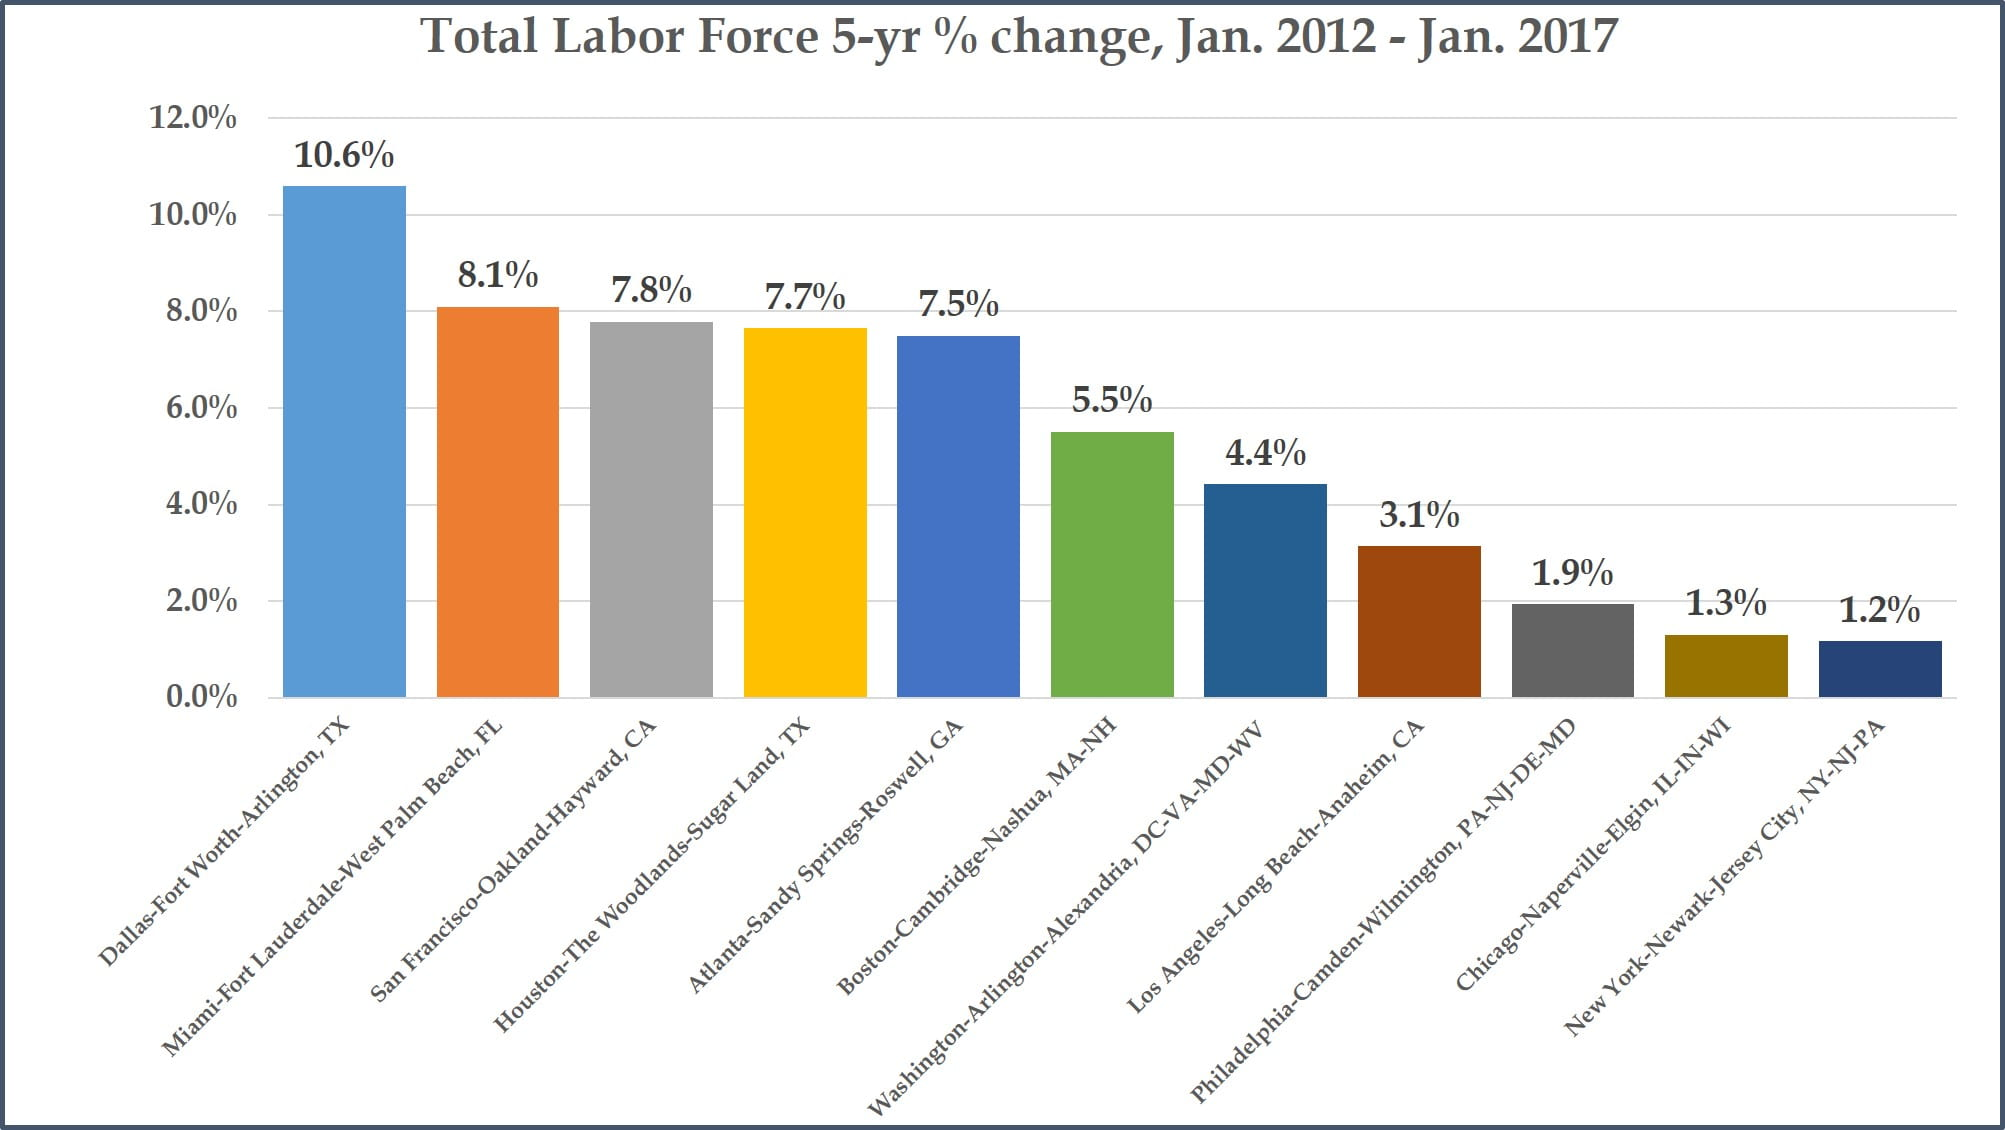 Total Labor Force - 5-year changes - Top Metros